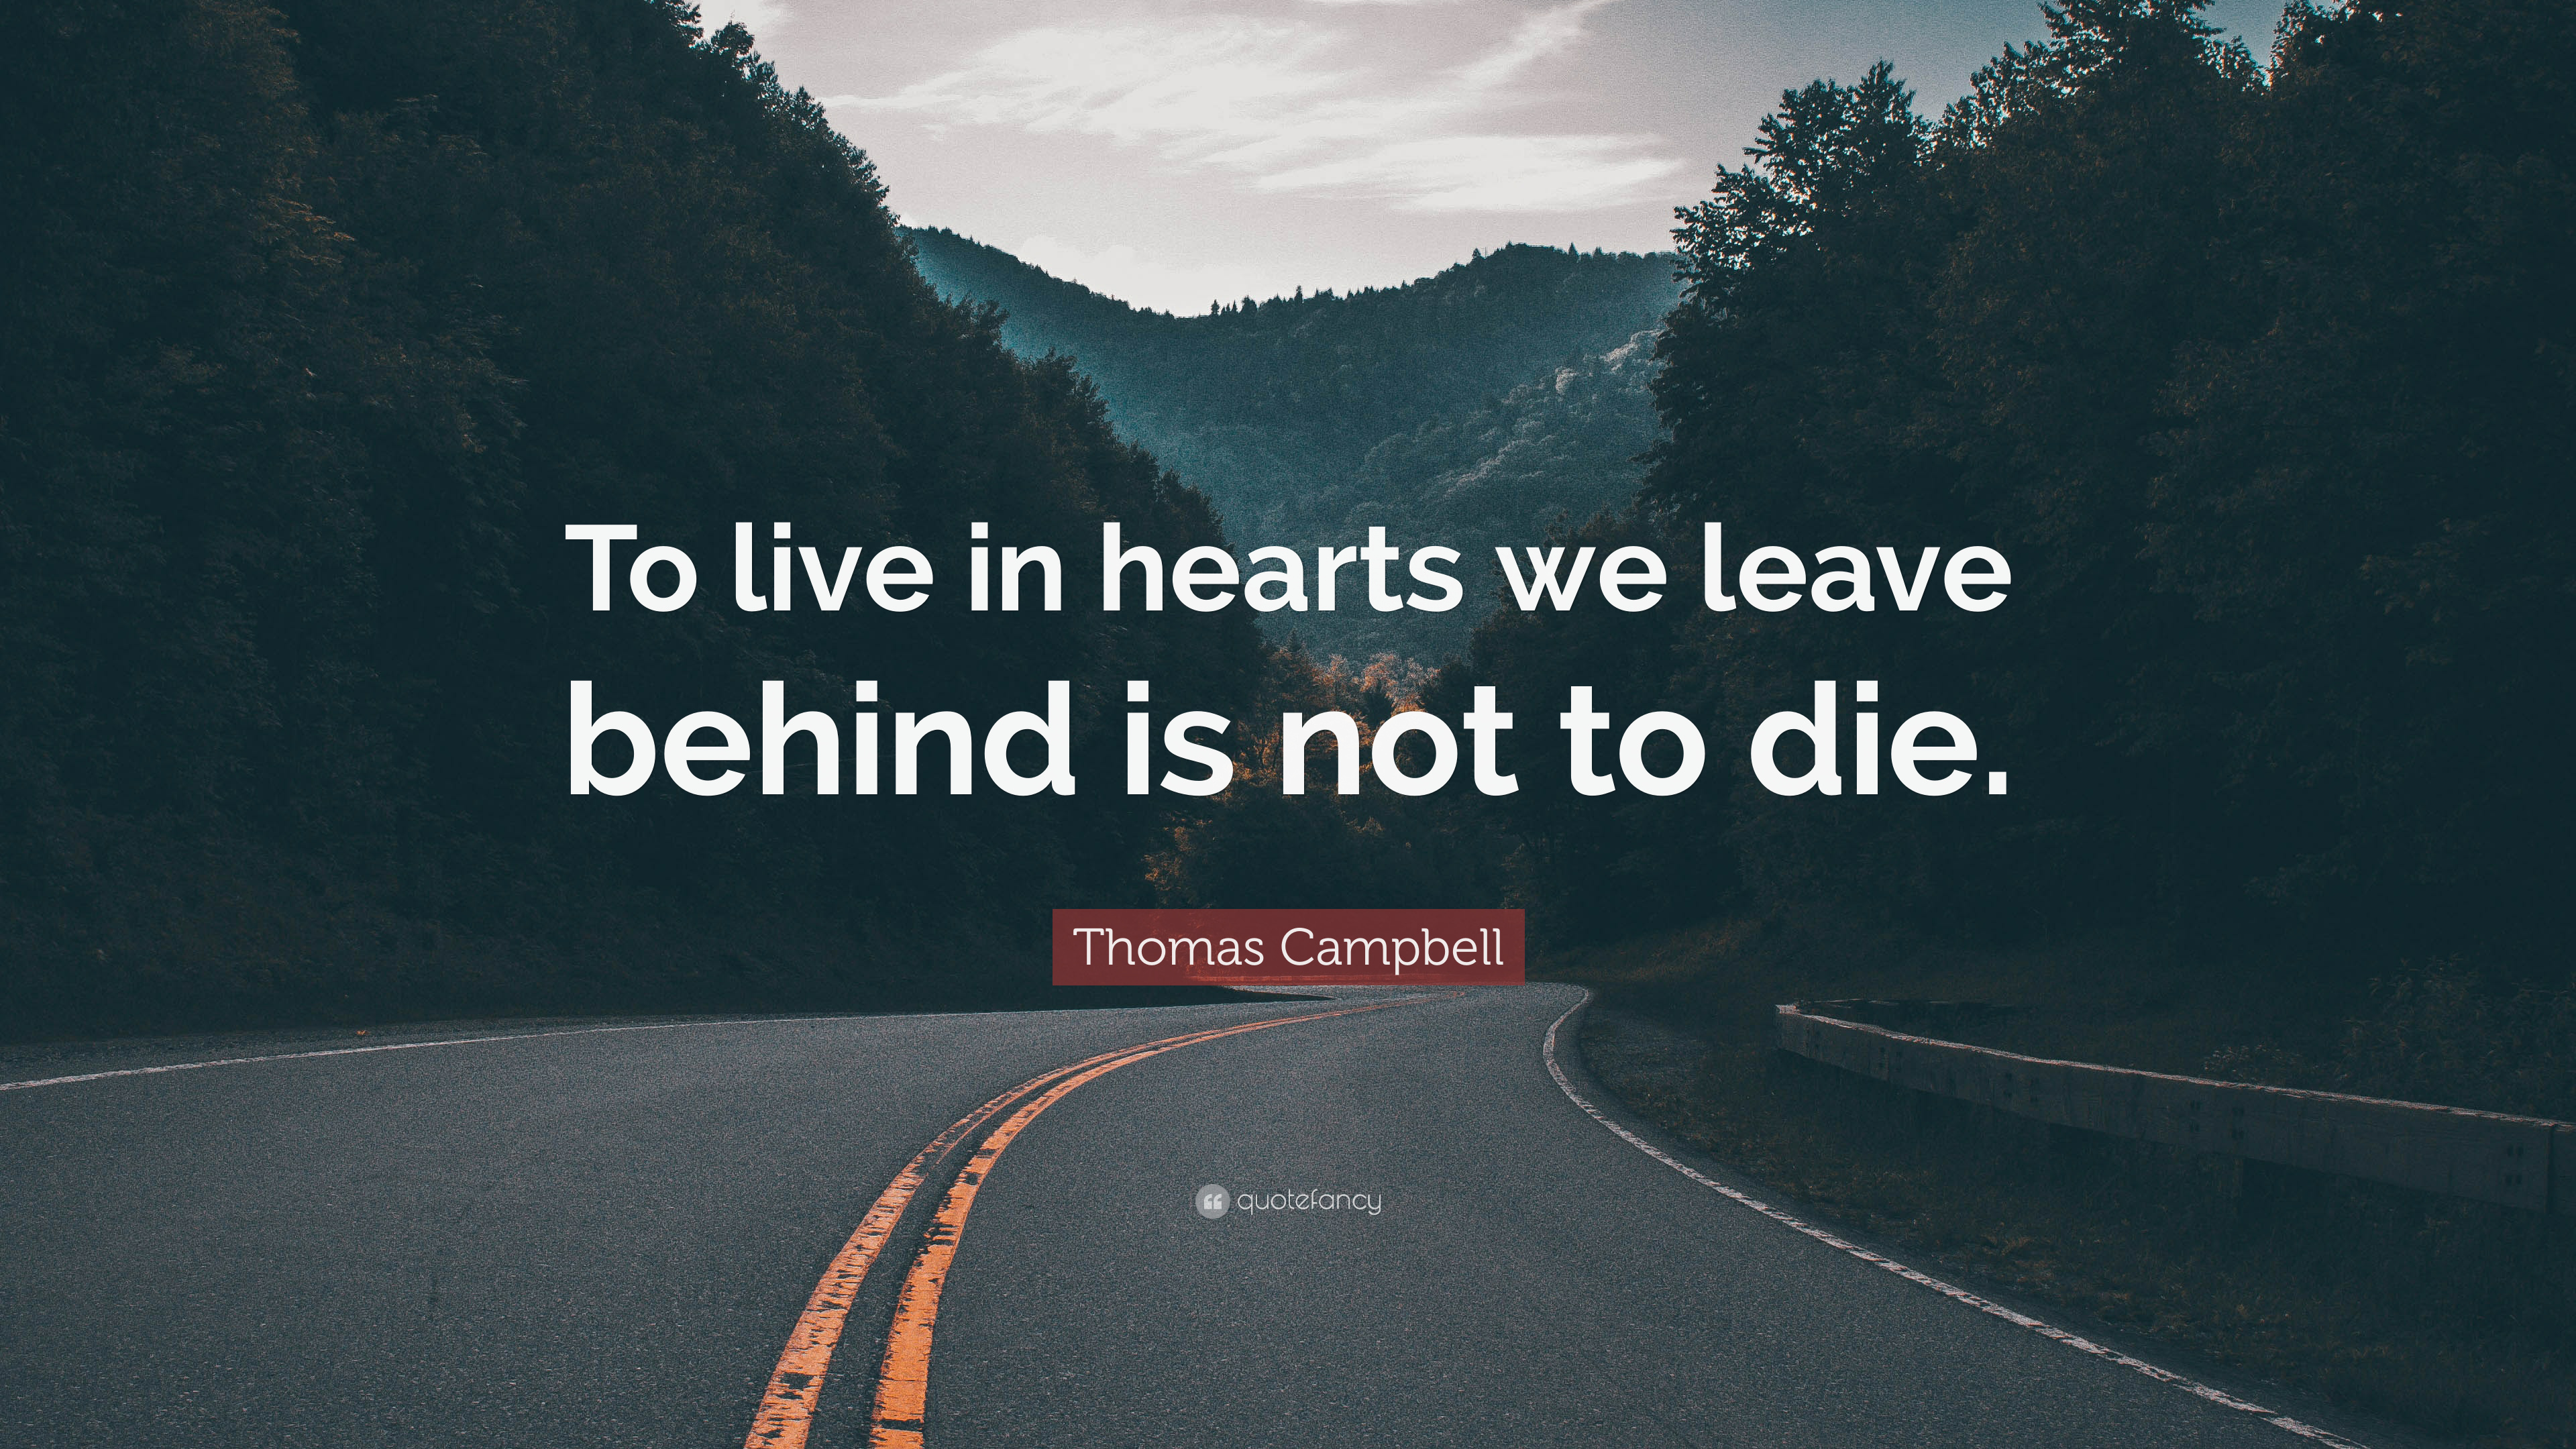 Good Thomas Campbell Quote: U201cTo Live In Hearts We Leave Behind Is Not To Die Amazing Ideas